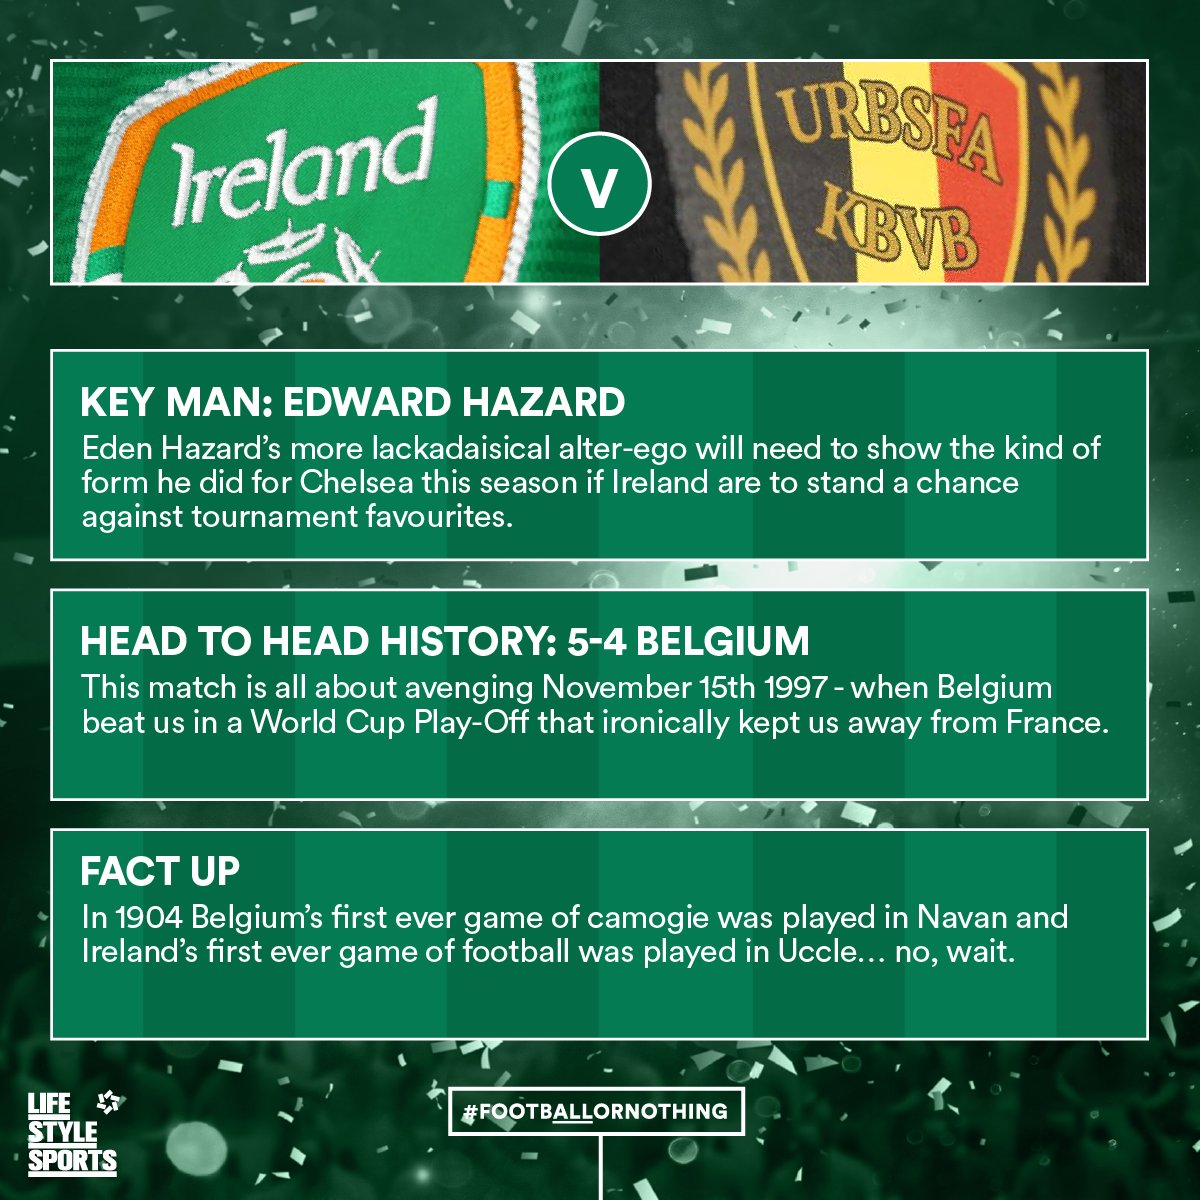 Ahead of this weeks crucial game, brush up on all things Belgian with our #IREvBEL Blaggers Guide #FootballorNothing https://t.co/Xem9DITPuT